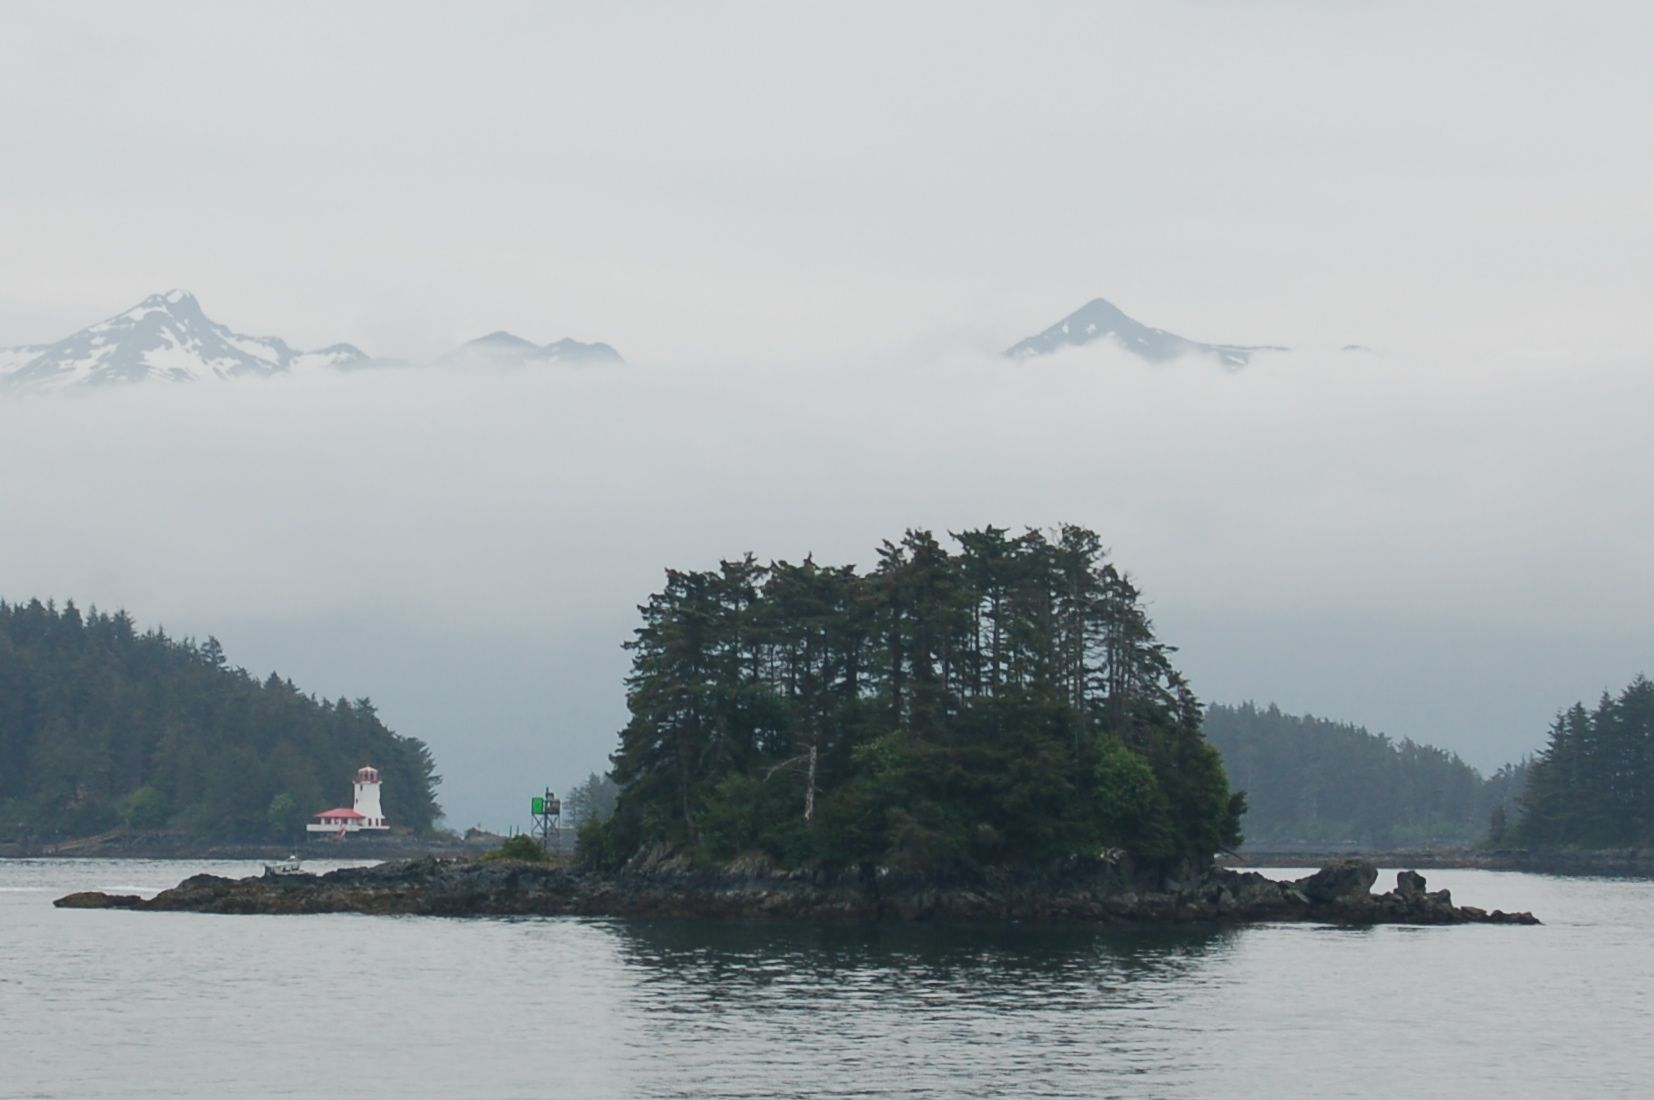 Rockwell Lighthouse off the coast of Sitka Alaska